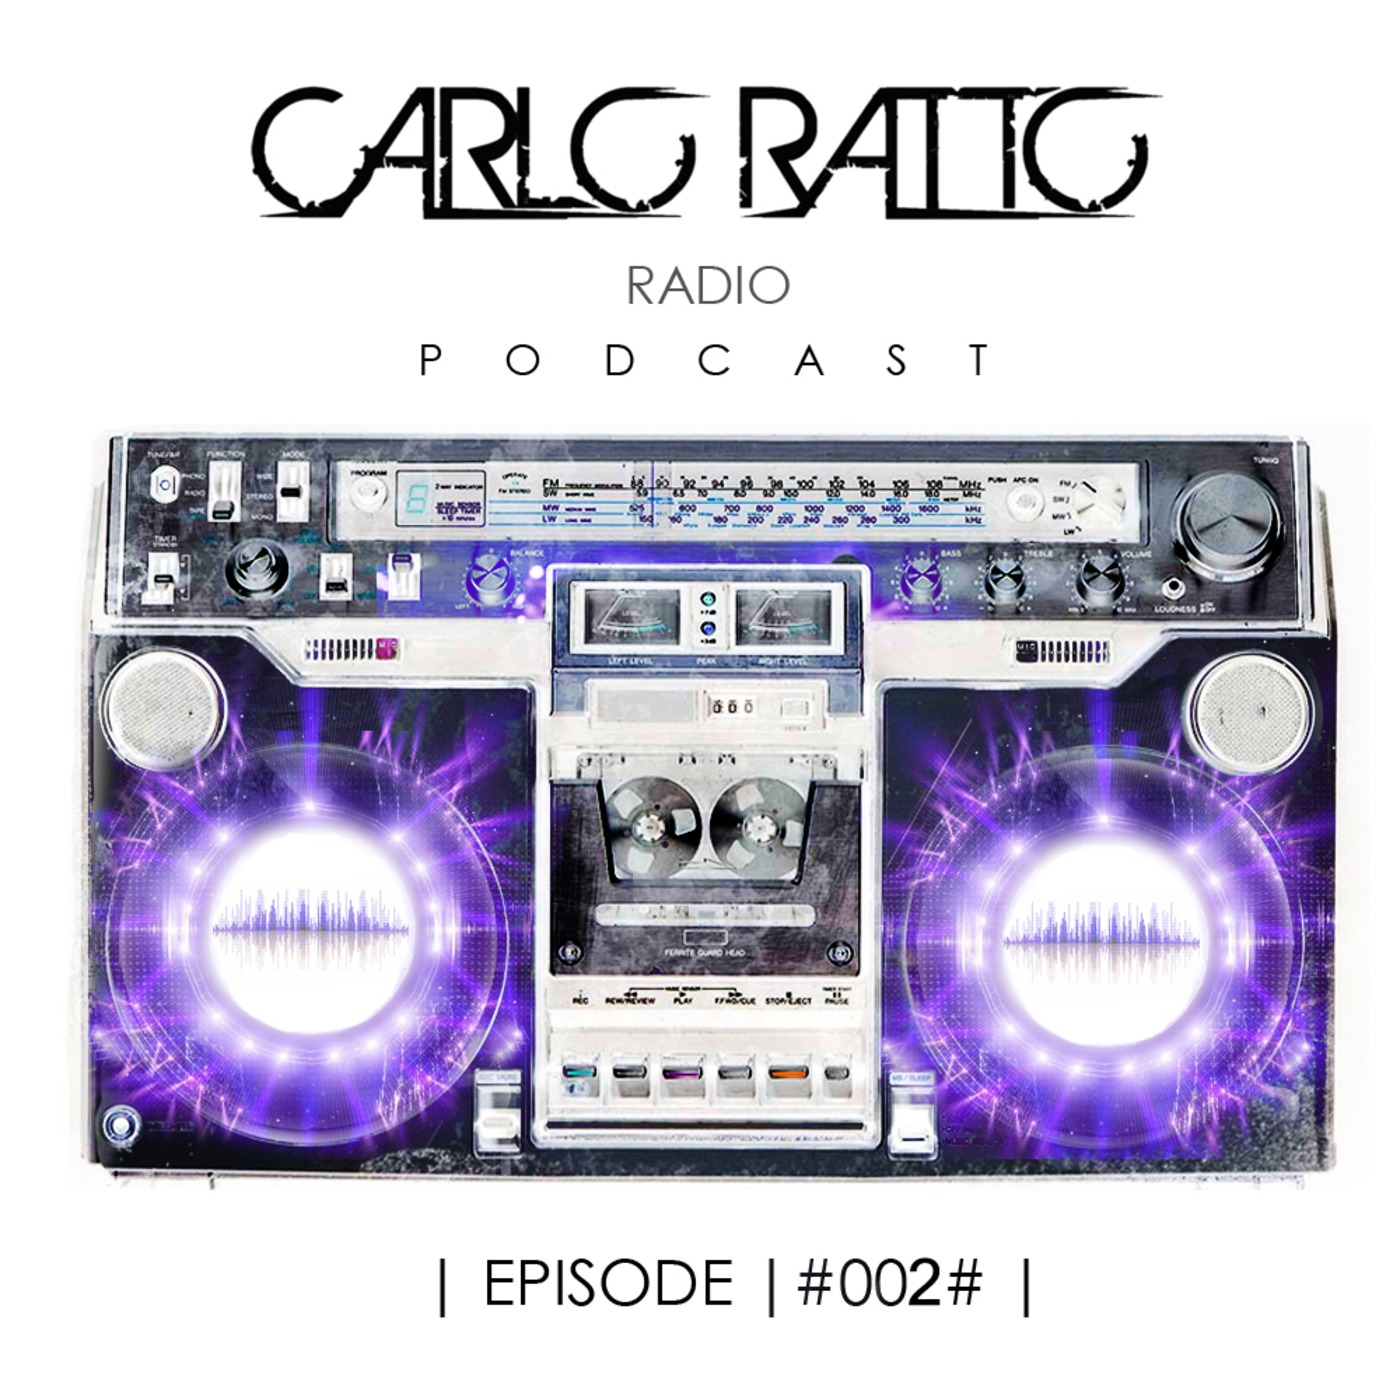 Carlo Ratto's Podcast